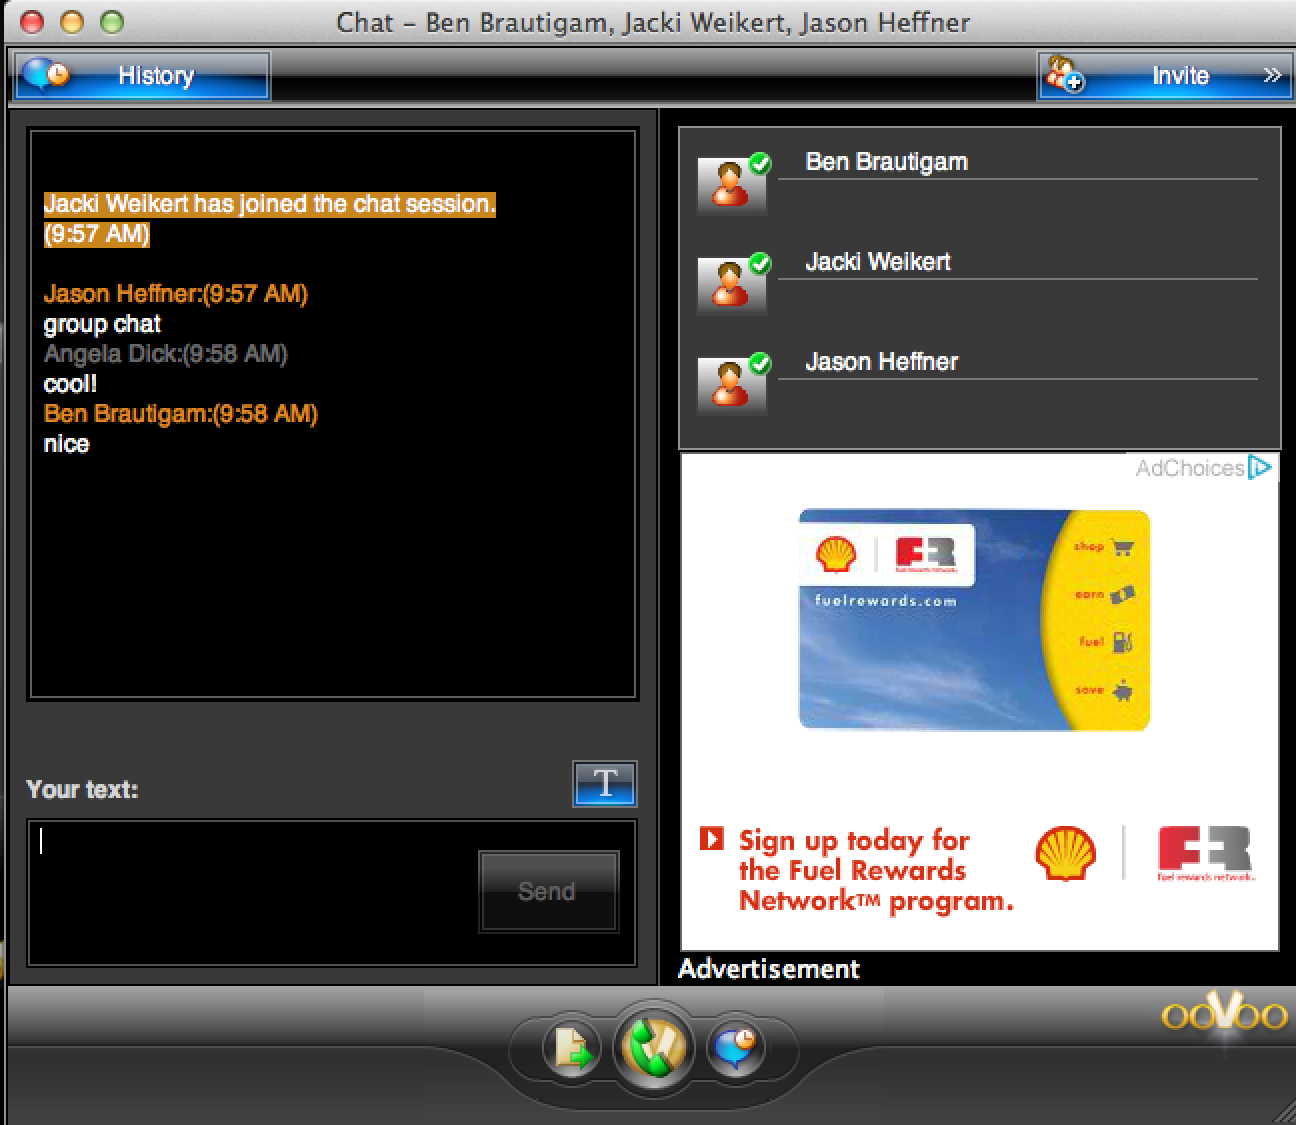 The chat window within ooVoo.